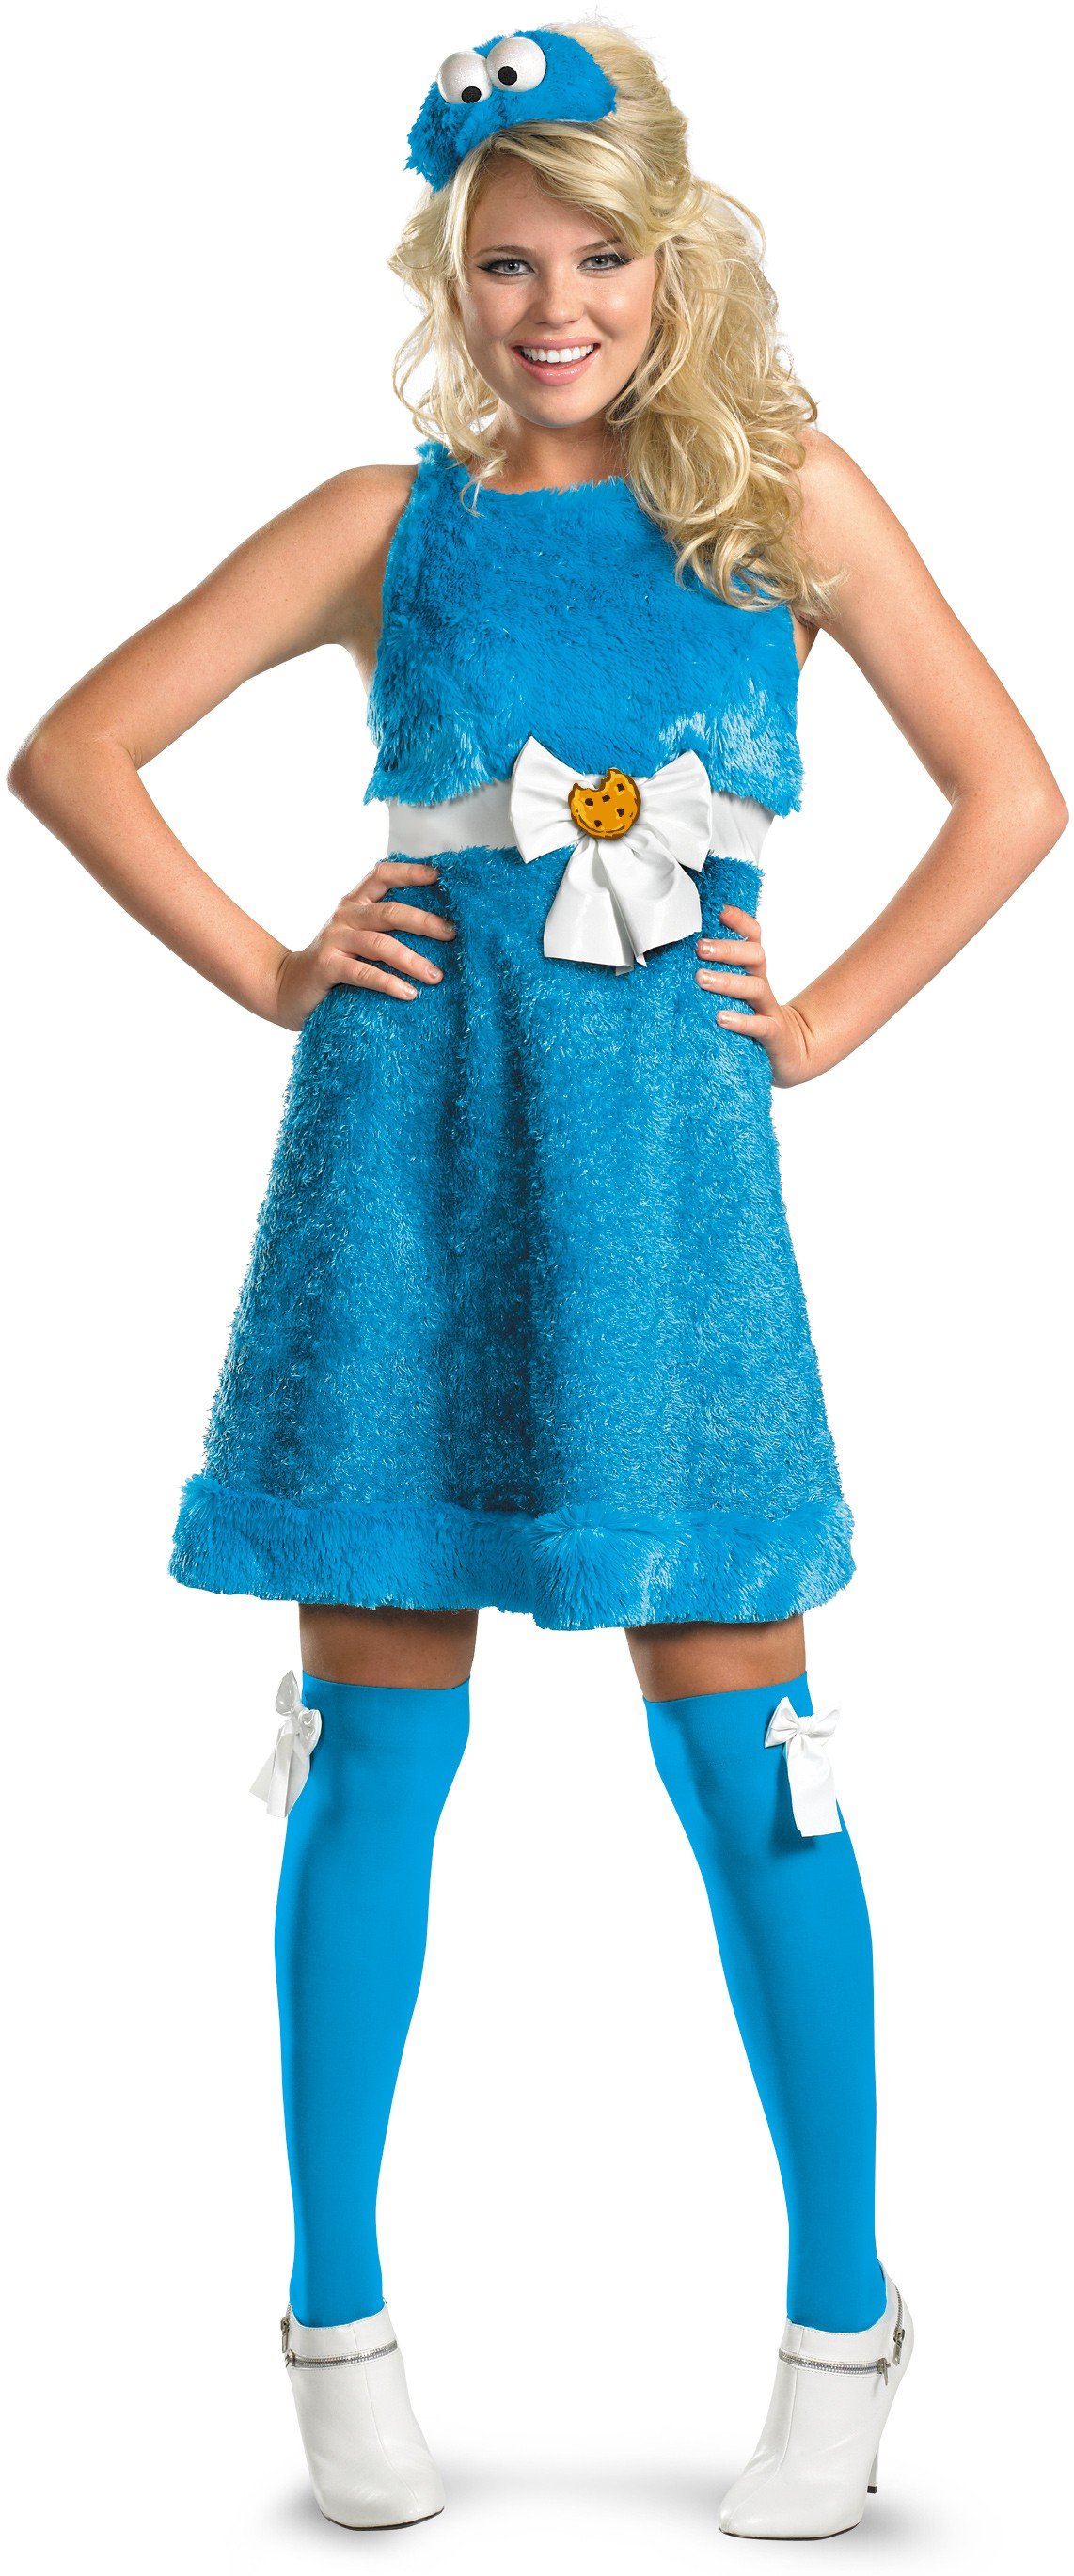 Sesame Street - Cookie Monster Sassy Female Adult Womenu0027s Costume.jpg  sc 1 st  Costumes.com.au & Sesame Street - Cookie Monster Sassy Female Adult Womenu0027s Costume ...